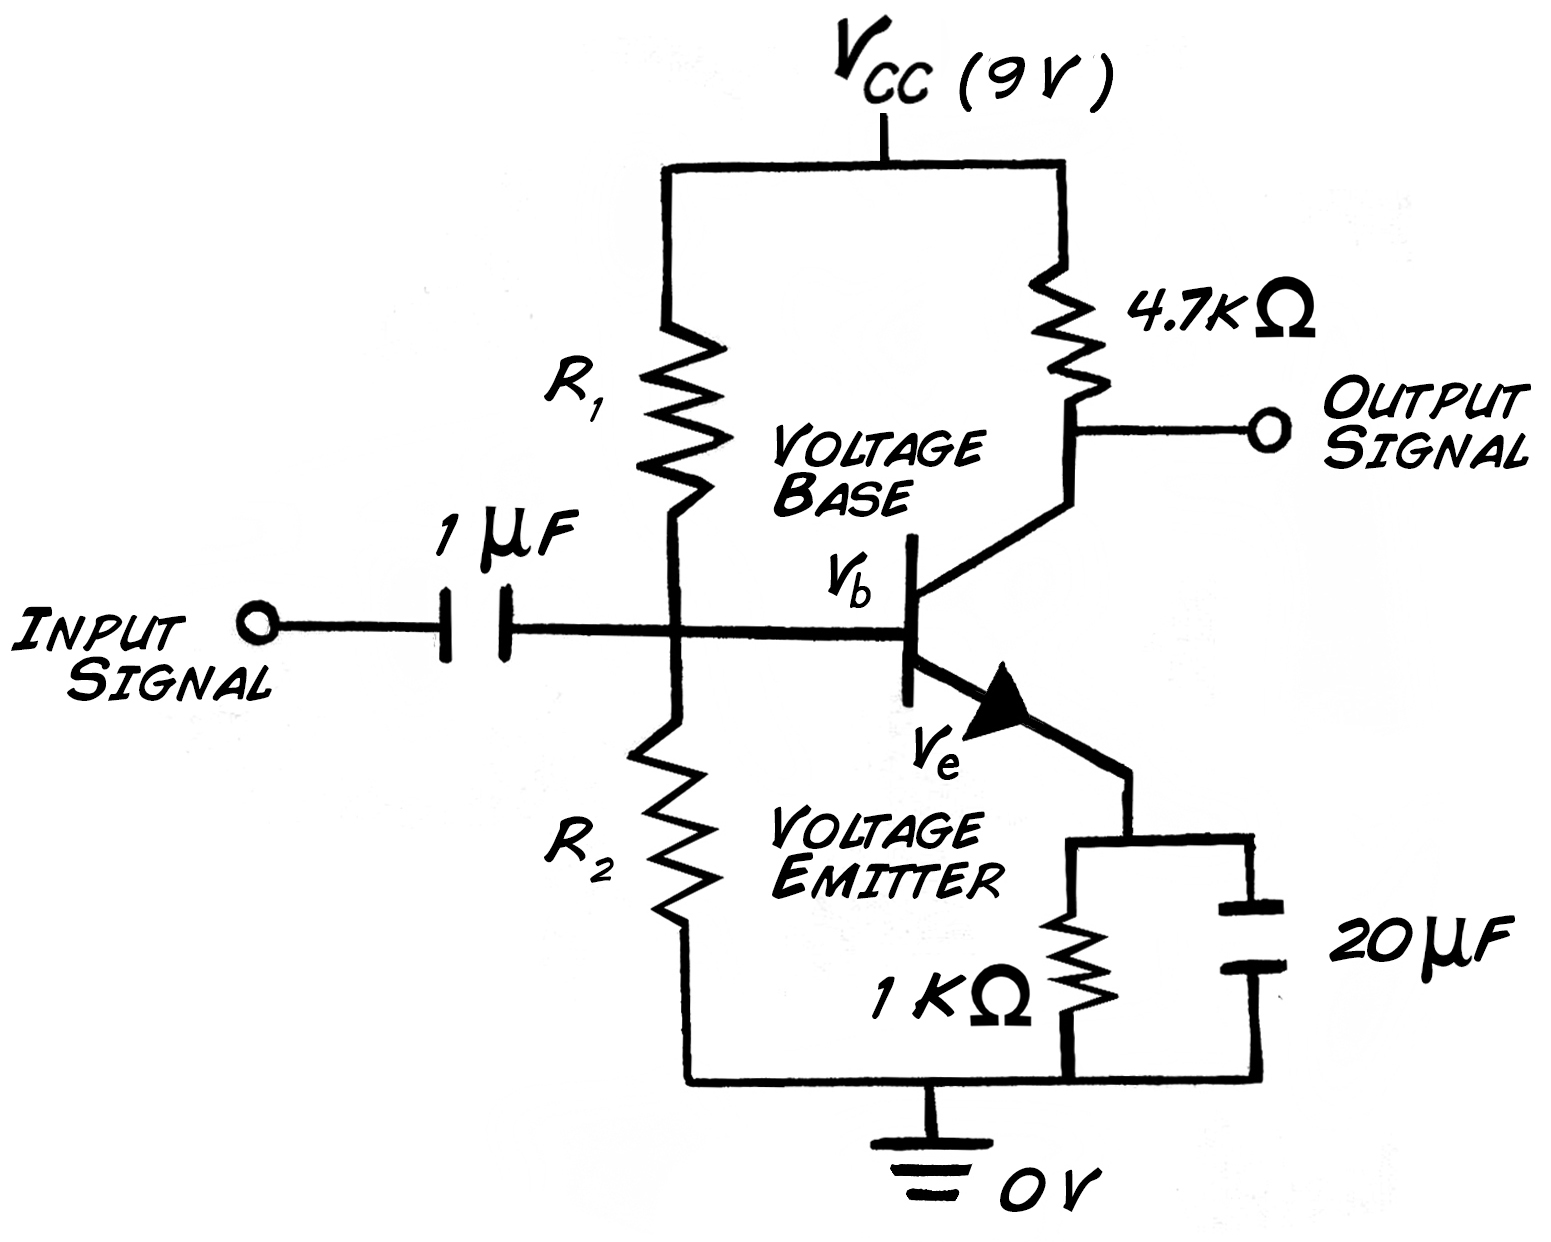 Power Transistor Diagram Wiring Diagrams Lc Filter Circuit Basiccircuit Seekic Experiment Design Rh Backyardbrains Com Amplifier Block